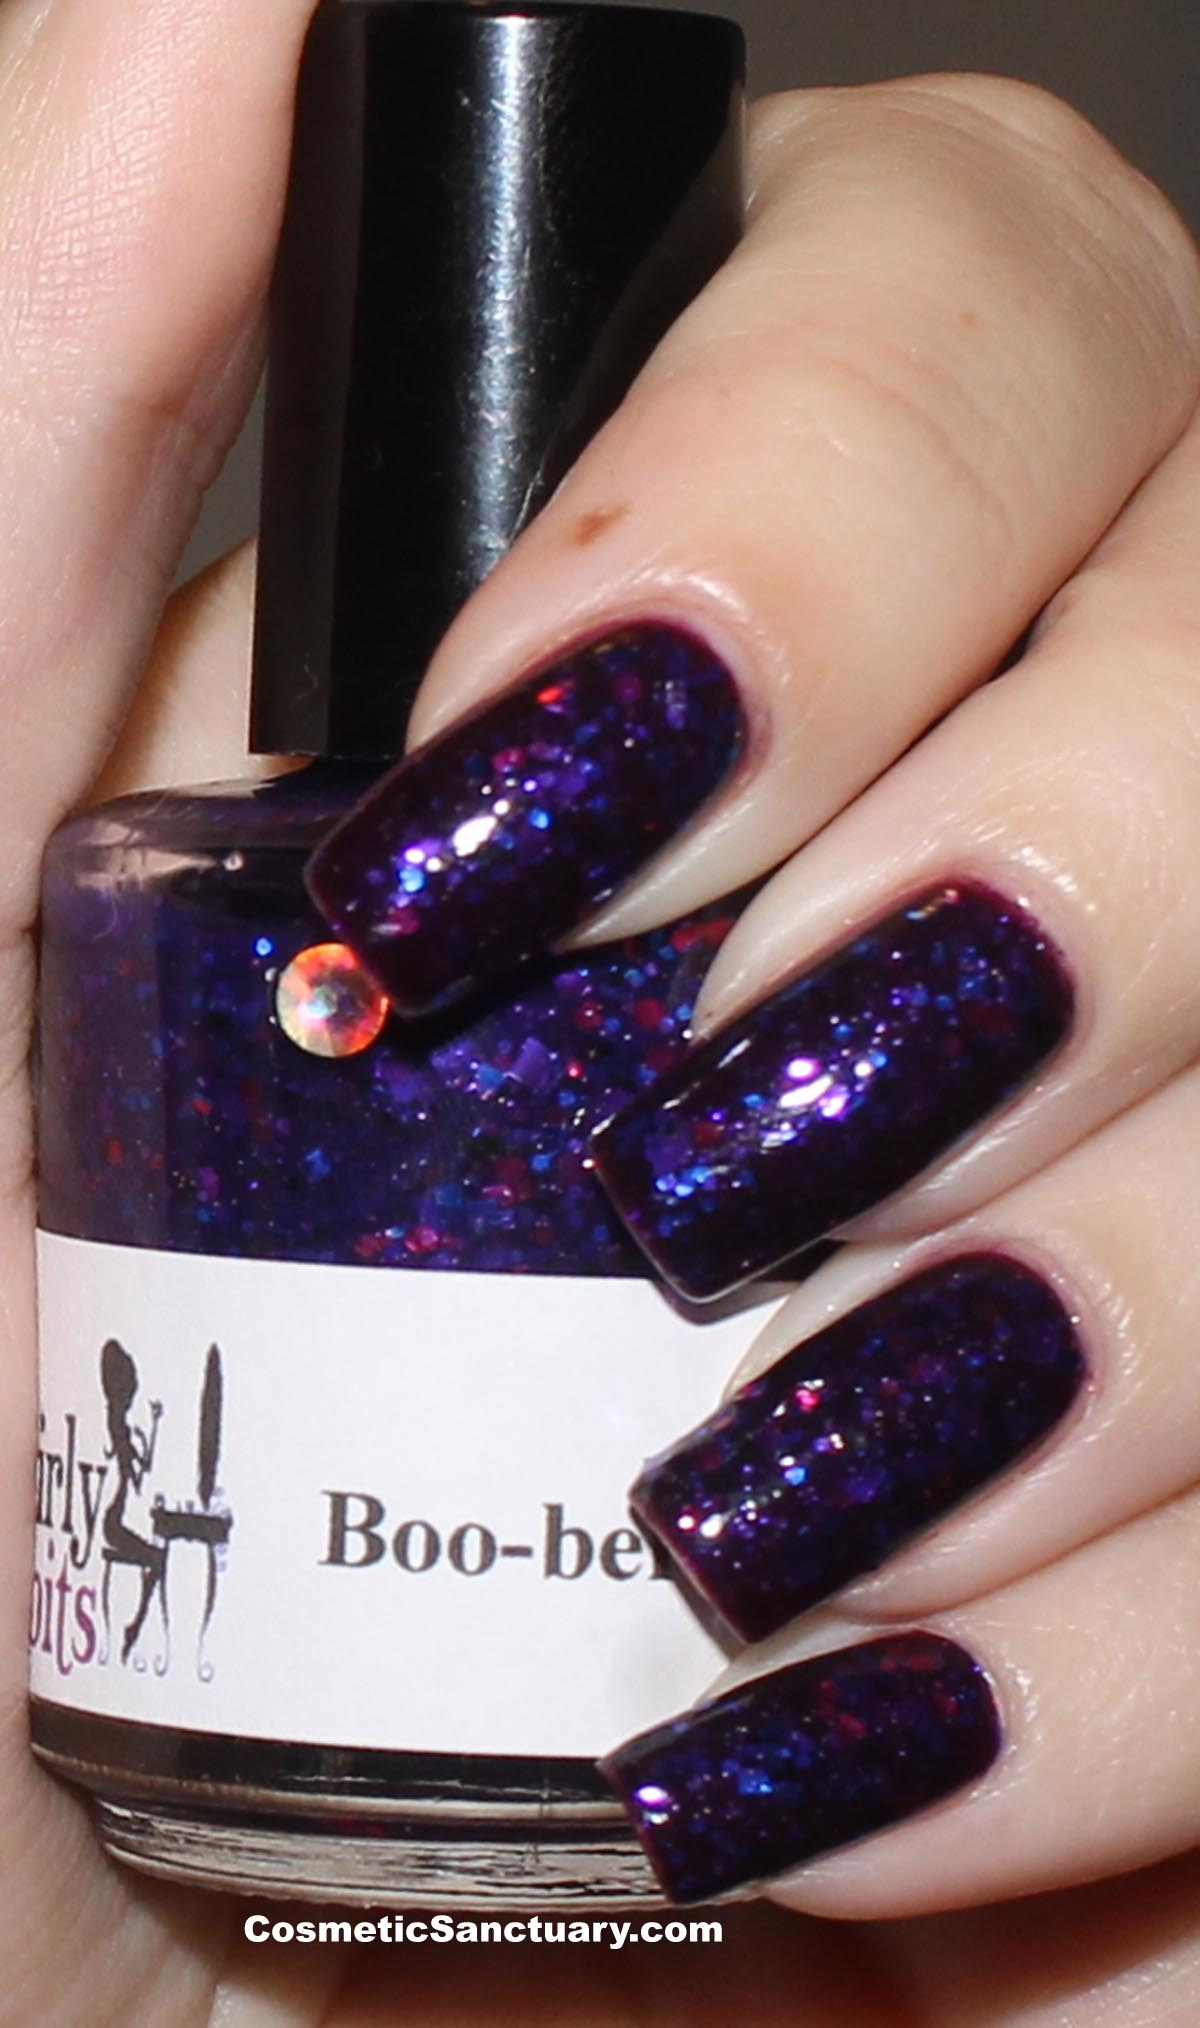 NOTD:  Girly Bits Boo-Berry Over Finger Paints Plum Startled